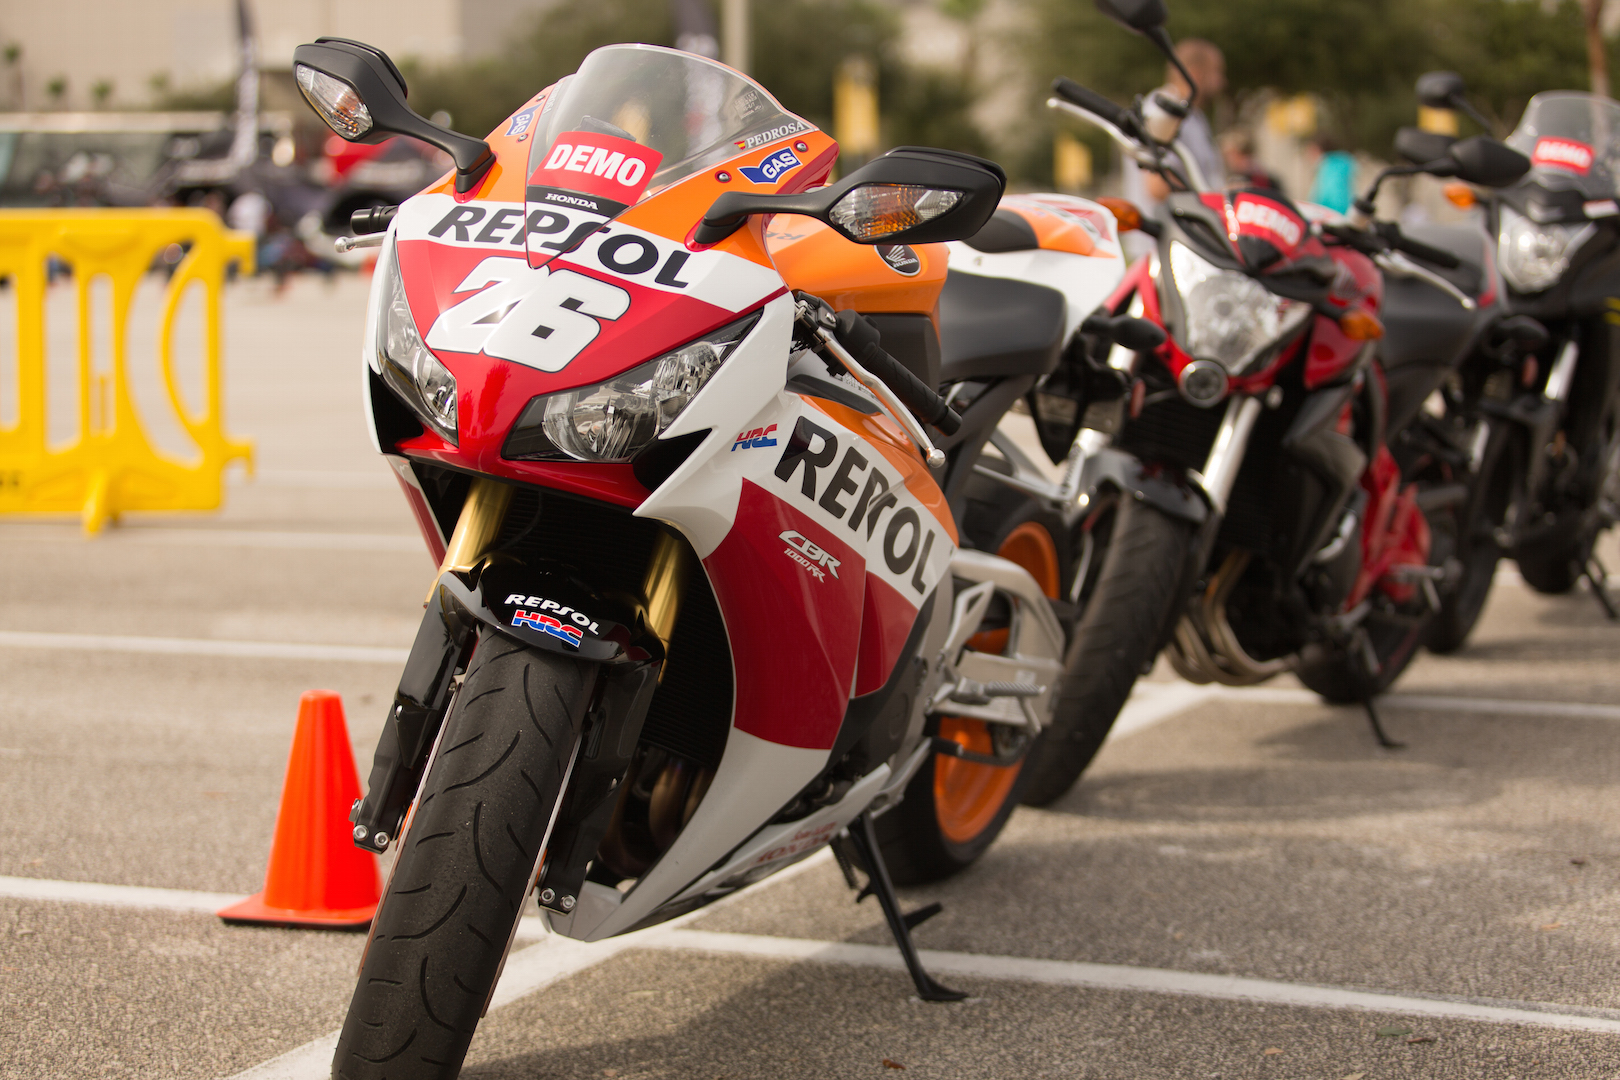 The 2015 Honda CBR1000RR Repsol Edition will rip your heart out like a superbike should. Video is below, text is below that. KEEPING SCROLLING SUCKA!